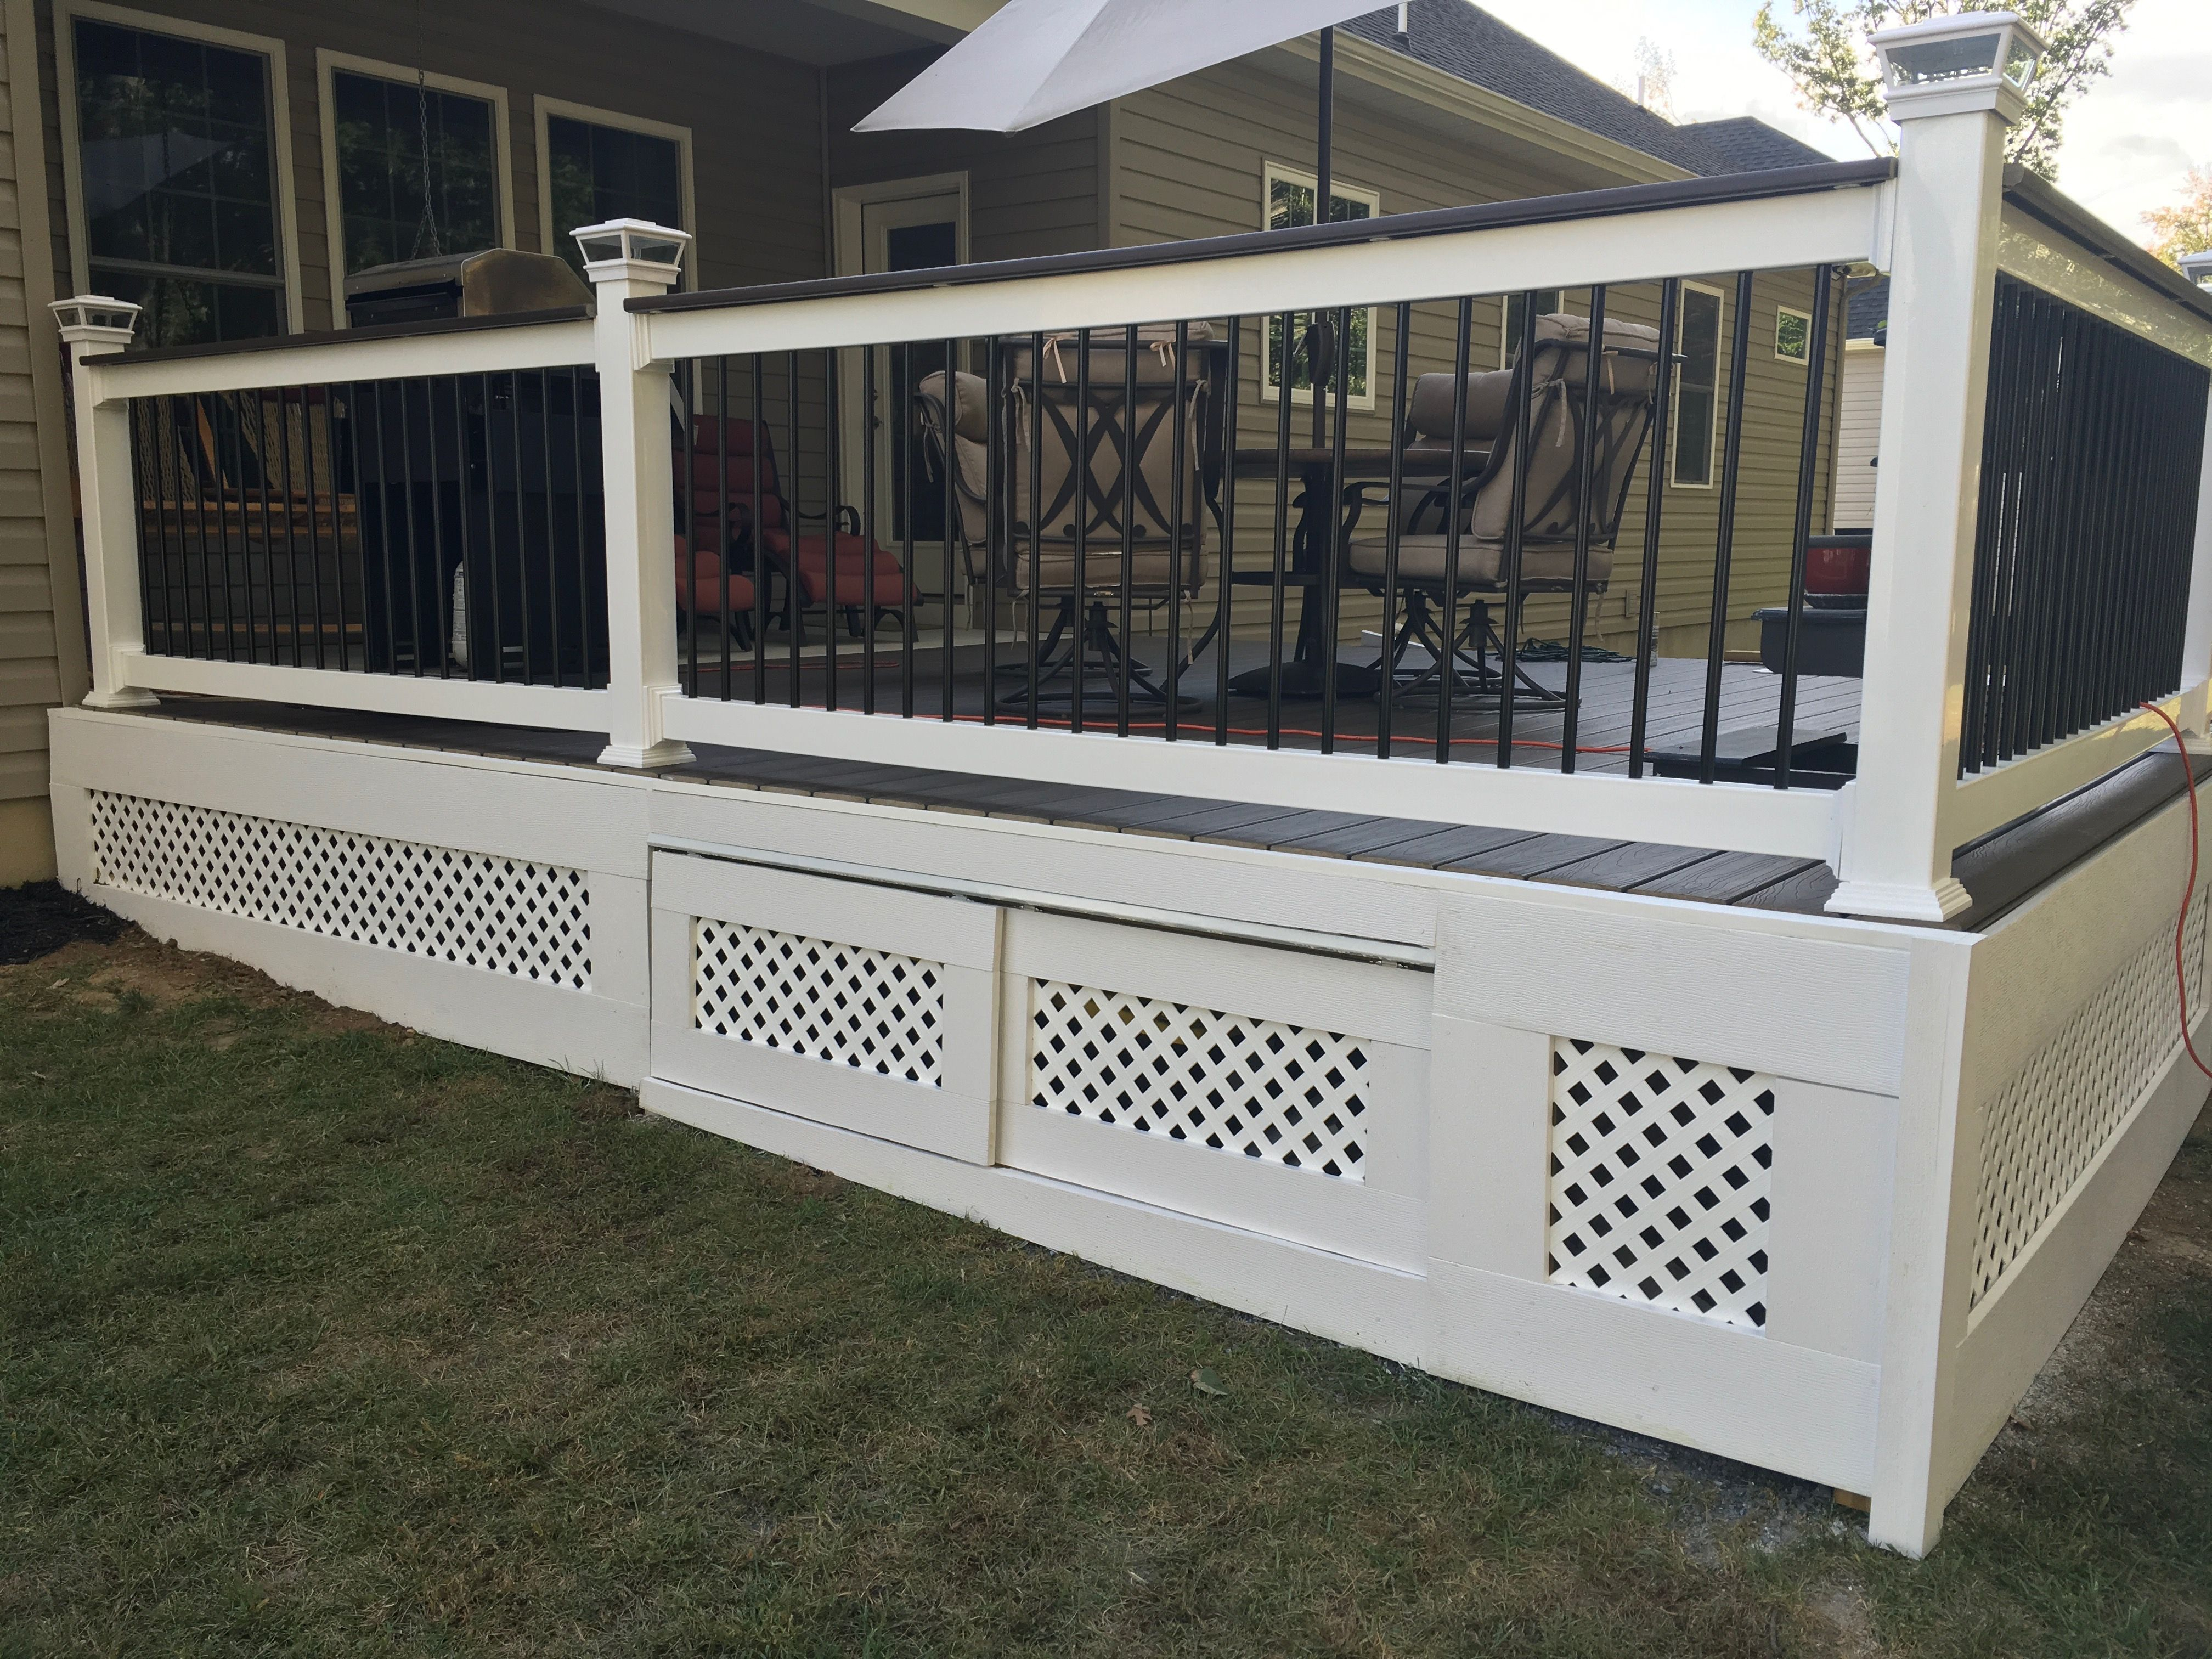 Deck Skirting Deck Skirting With Storage Deck Railings Trex Deck pertaining to size 4032 X 3024